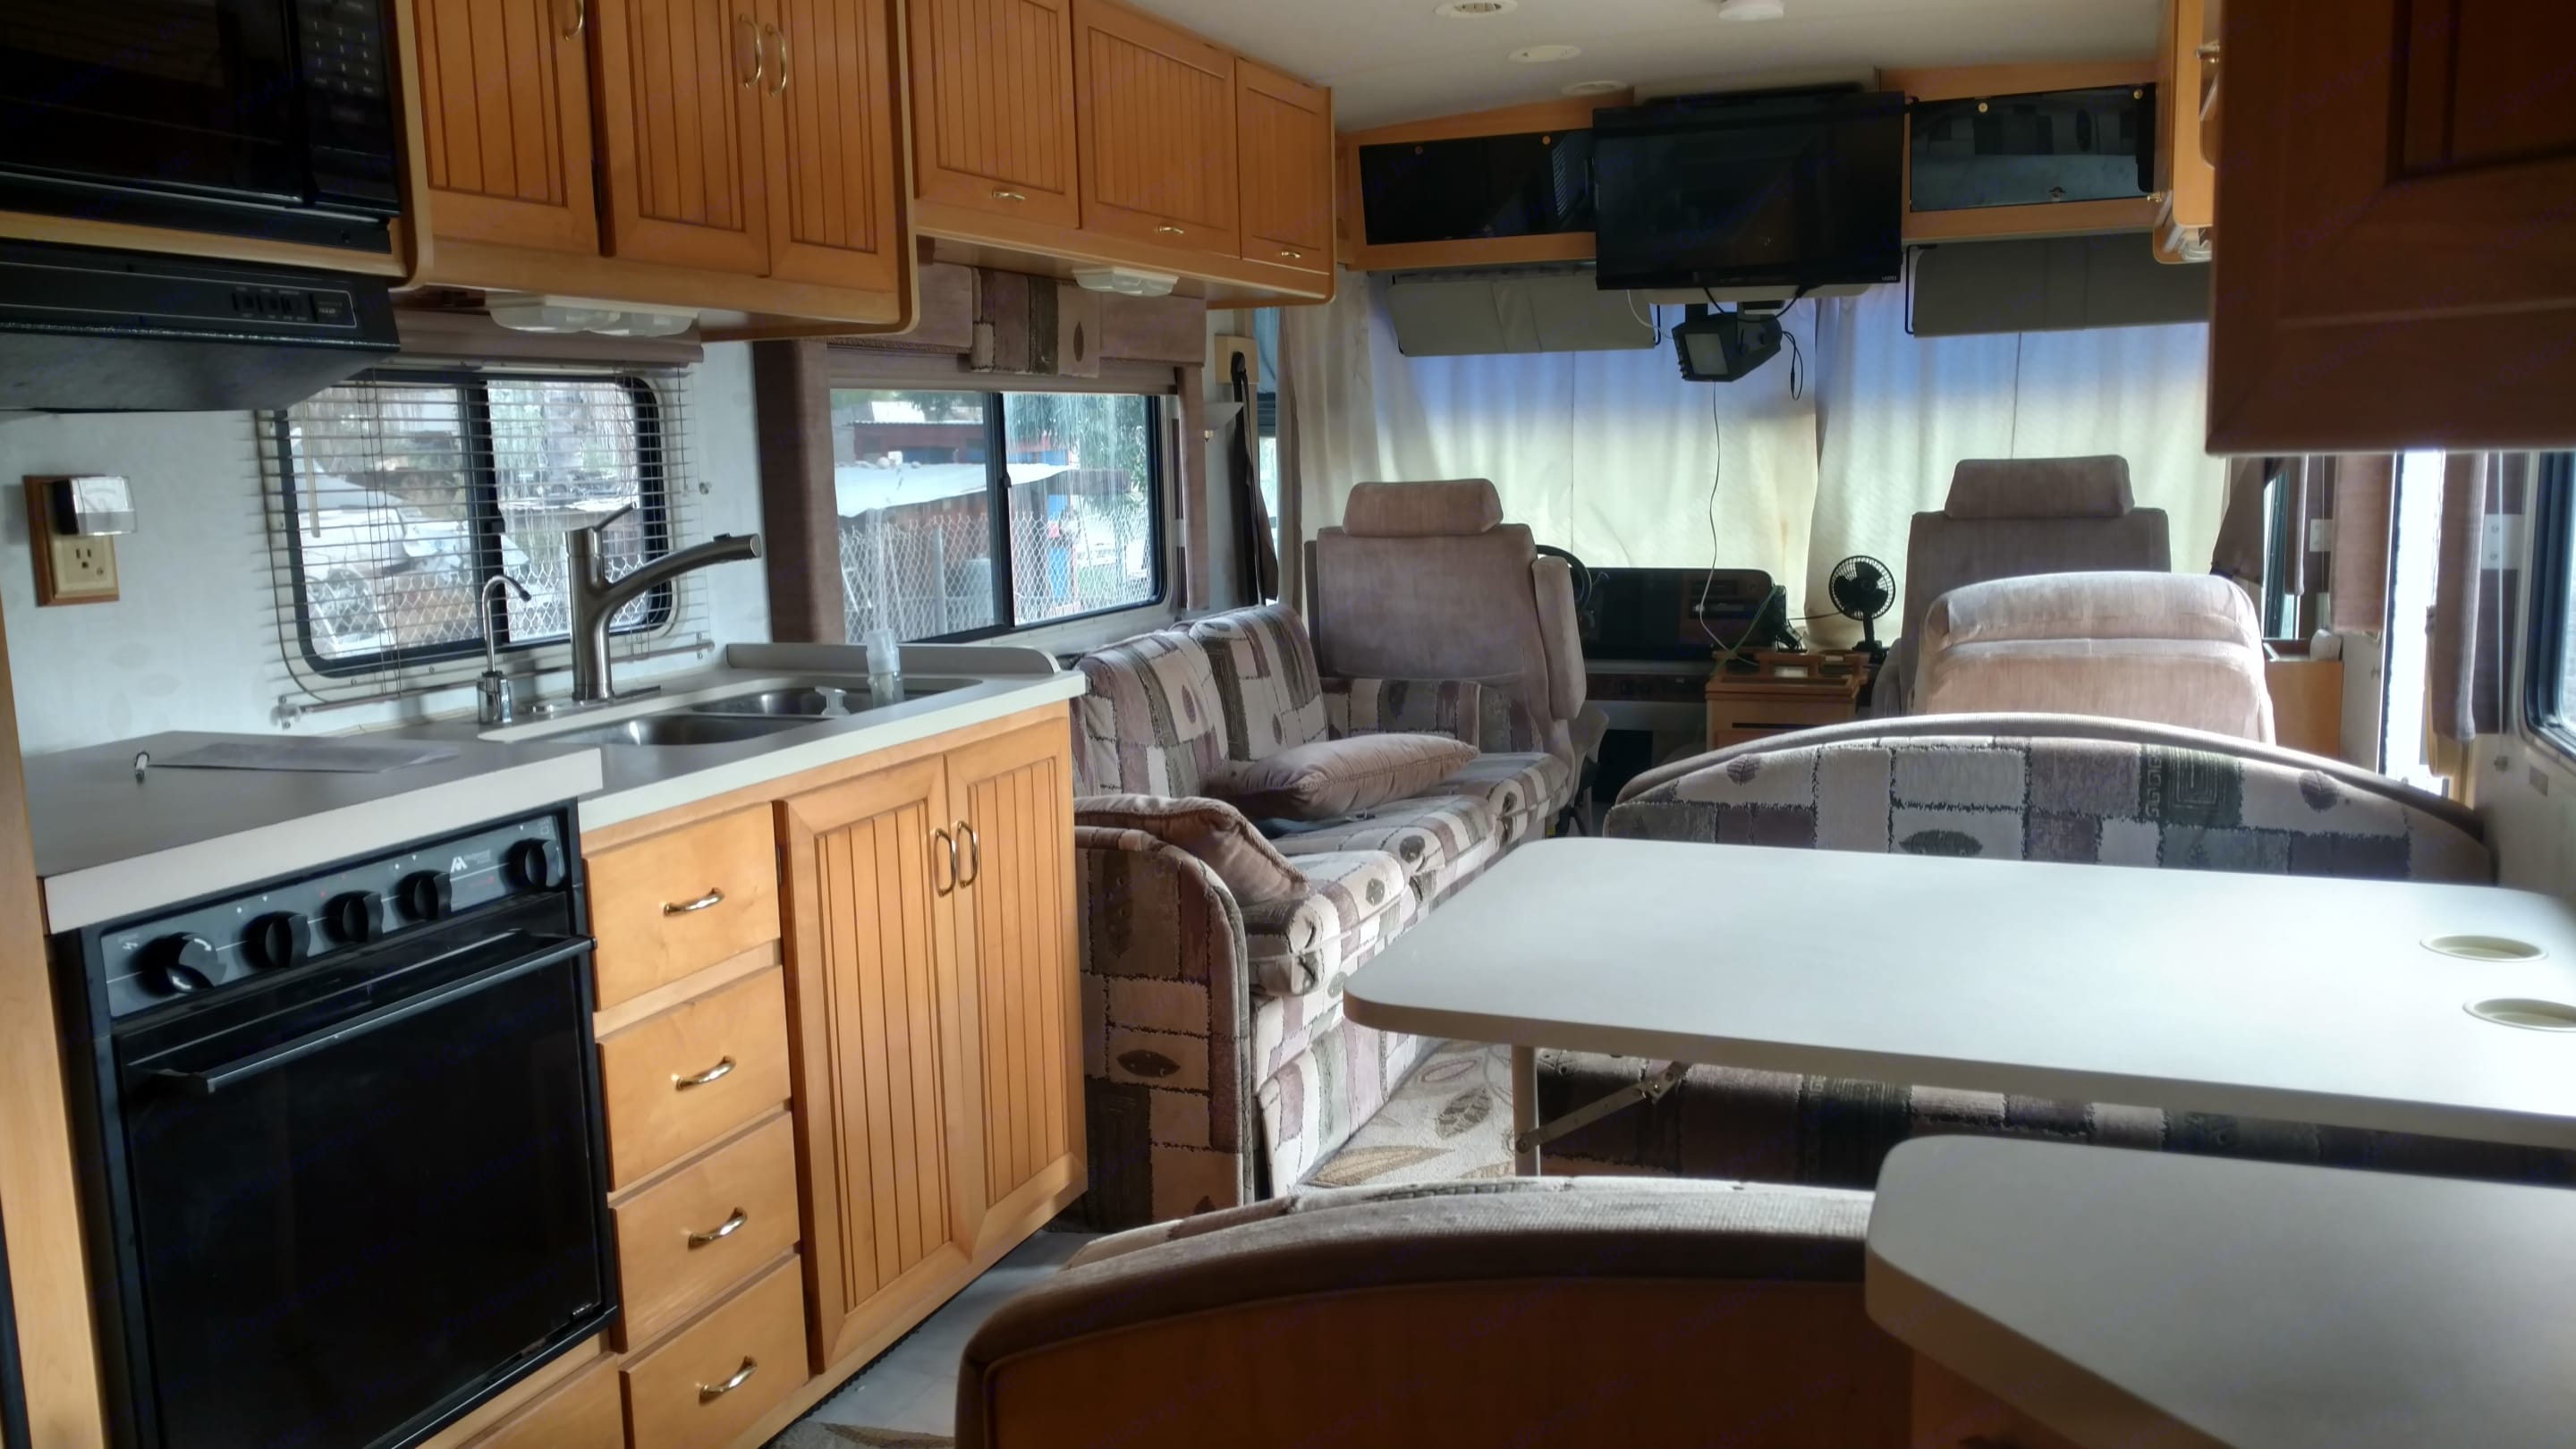 Couch Pulls out into a bed. Dining set converts to a bed as well.. Itasca Suncruiser 1997